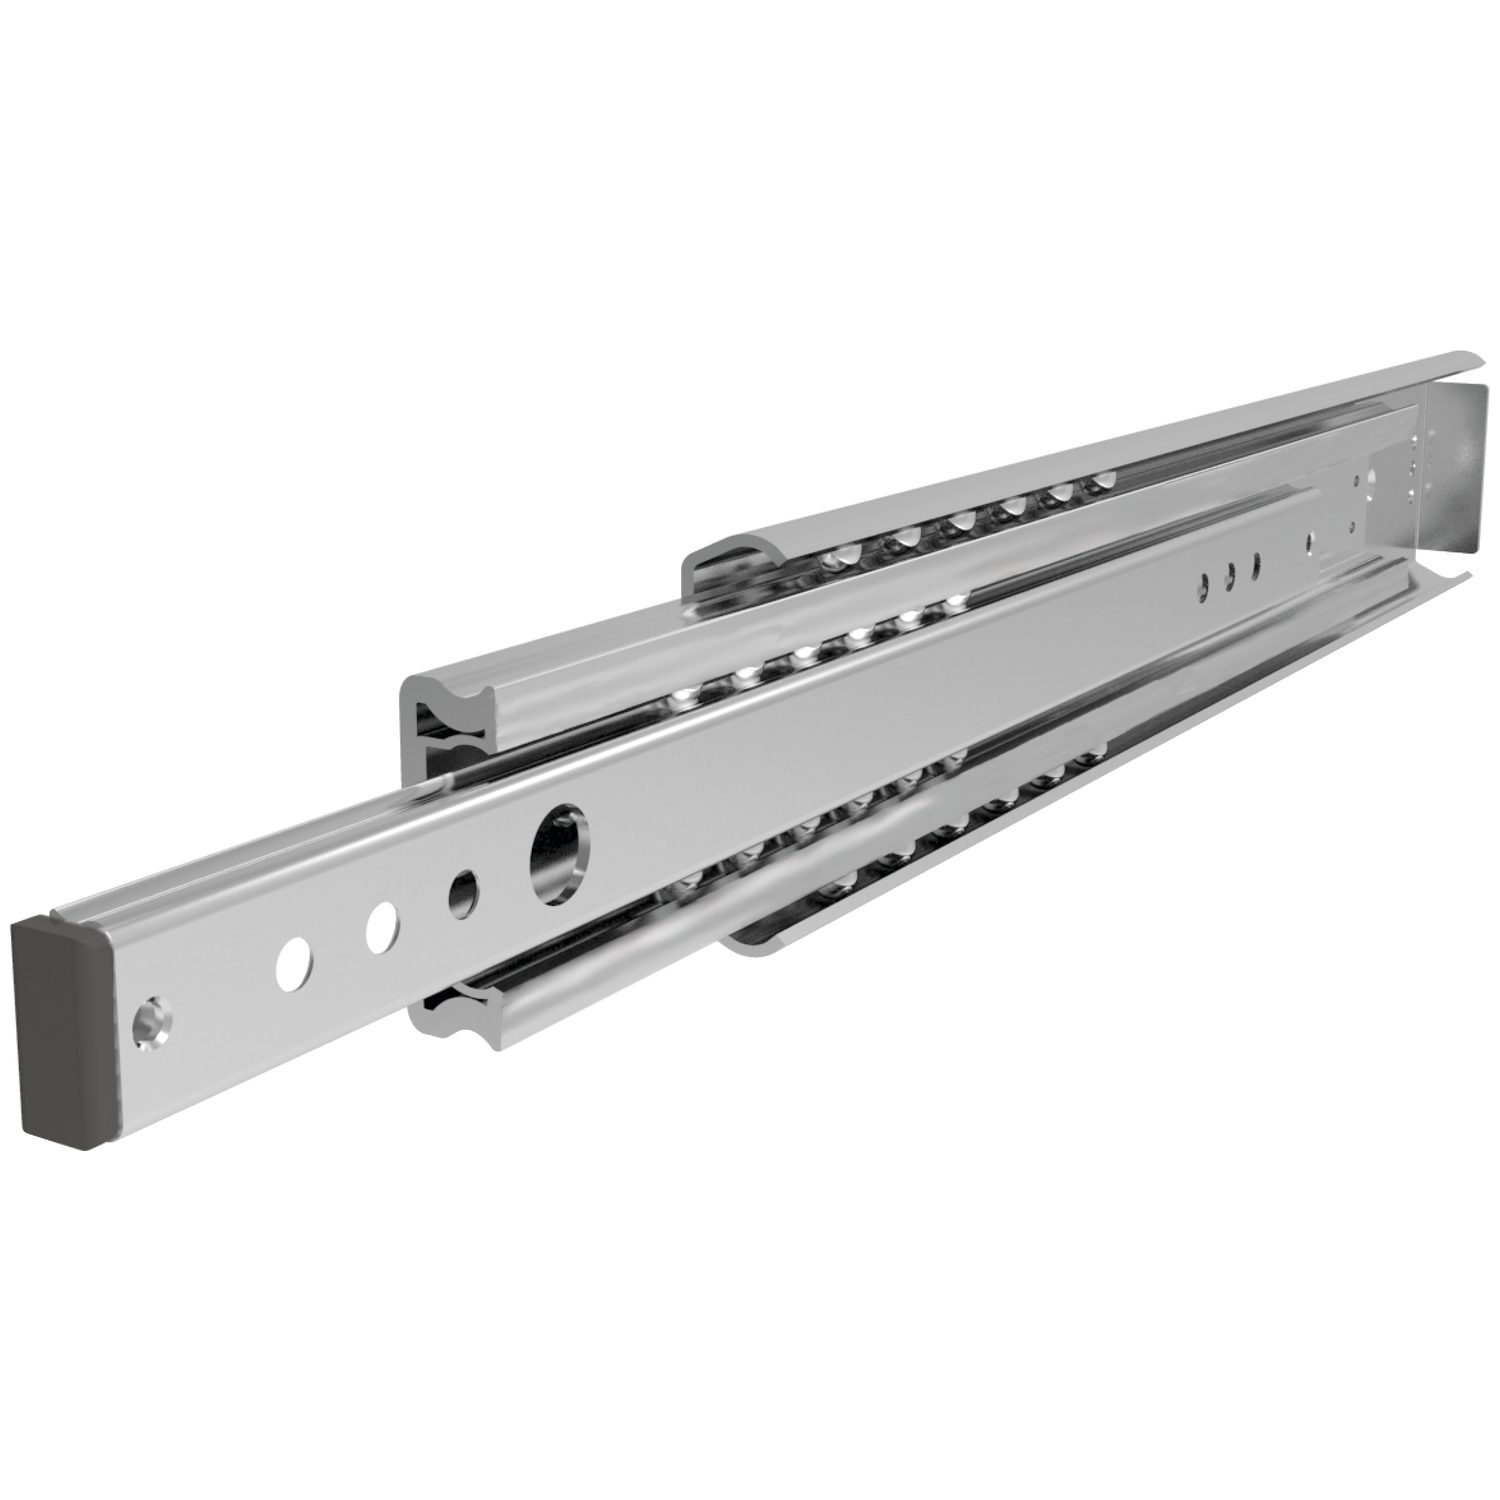 Fully Telescopic Drawer Slides Fully Telescopics drawer slides, loads up to 35kg per pair. Made from zinc-plated steel.